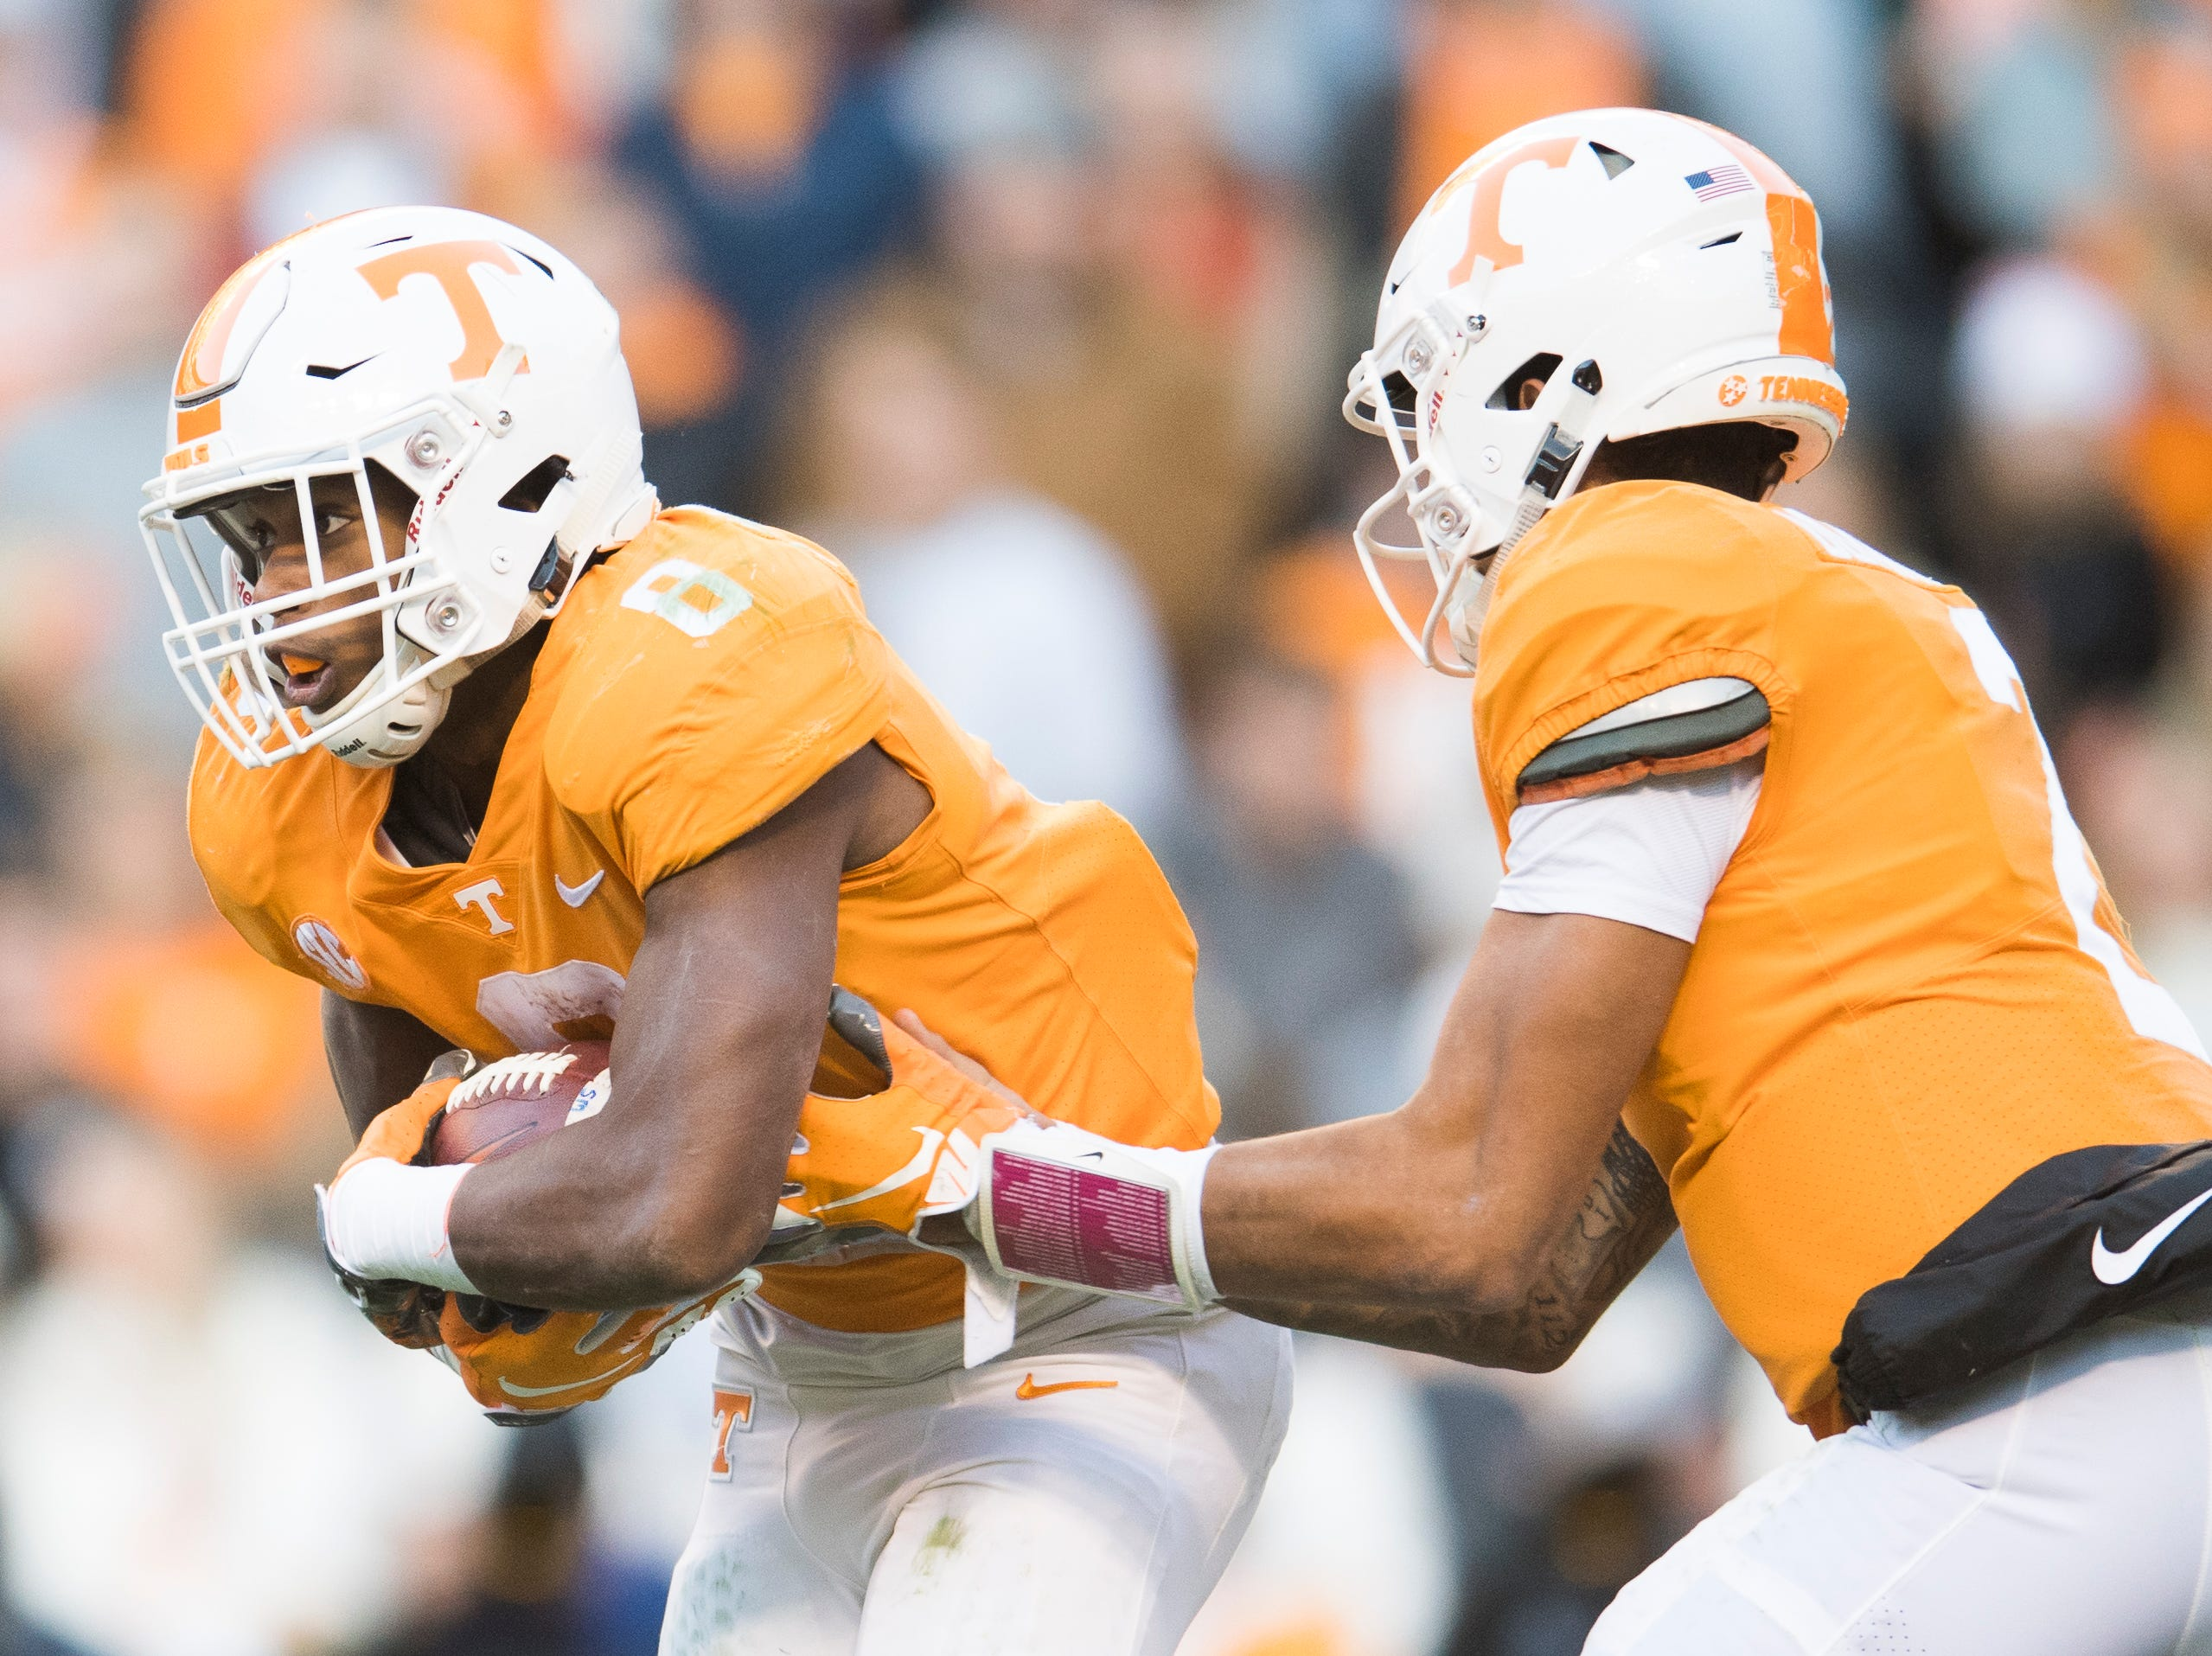 Tennessee running back Ty Chandler (8) is handed the ball by Tennessee quarterback Jarrett Guarantano (2) during a game between Tennessee and Kentucky at Neyland Stadium in Knoxville, Tennessee on Saturday, November 10, 2018.